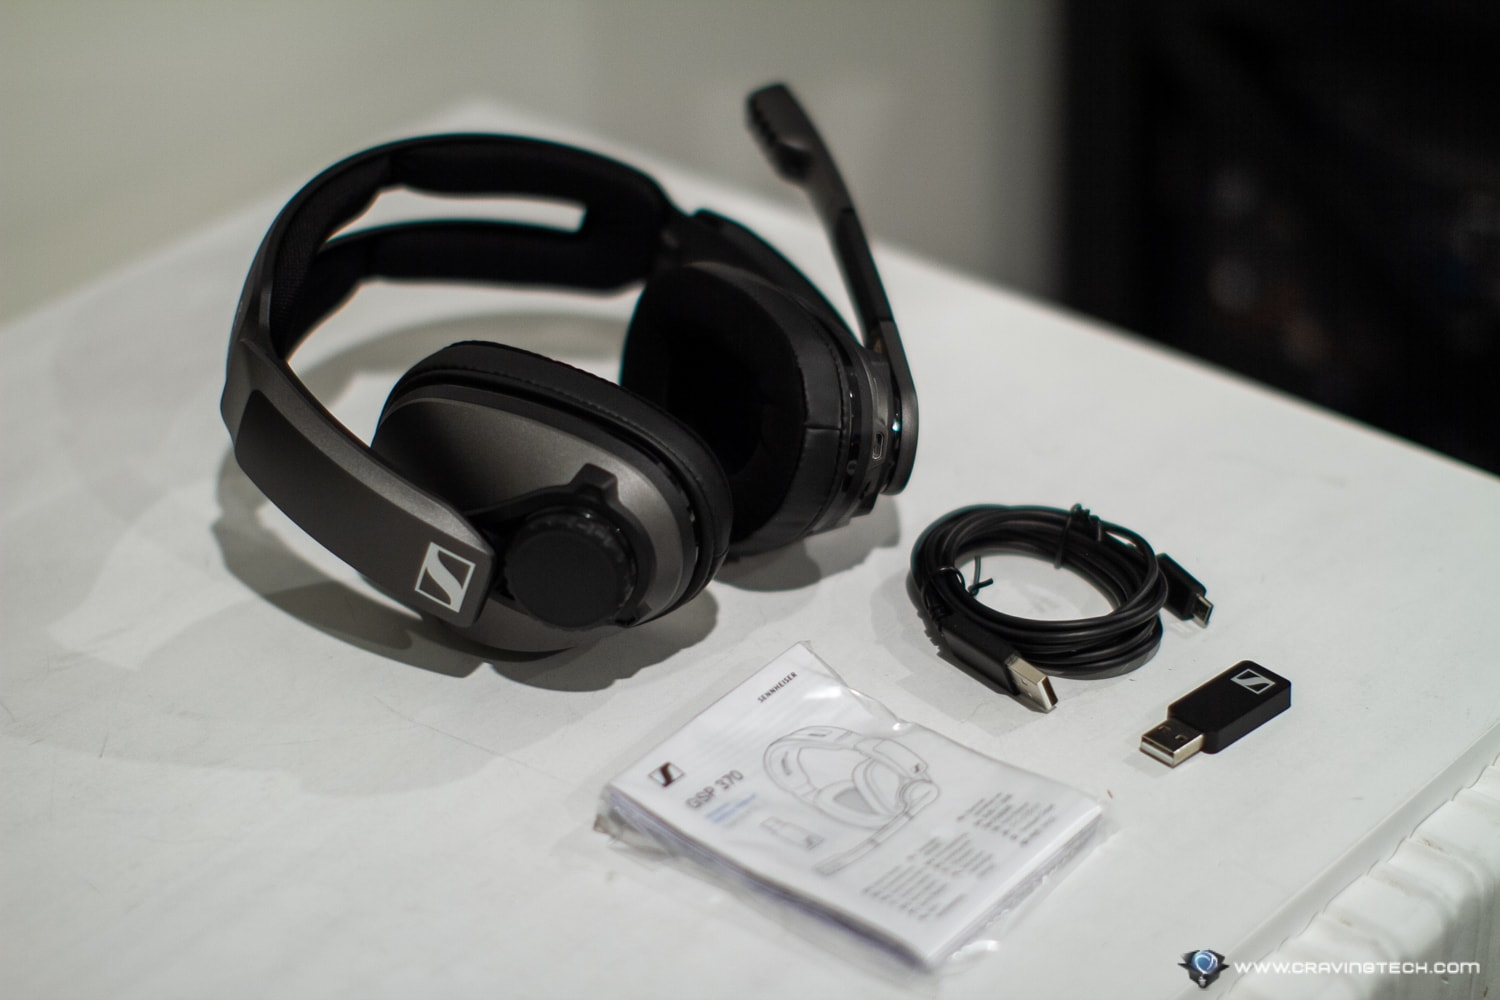 Sennheriser GSP 370 Wireless Gaming Headset Packaging and Unboxing